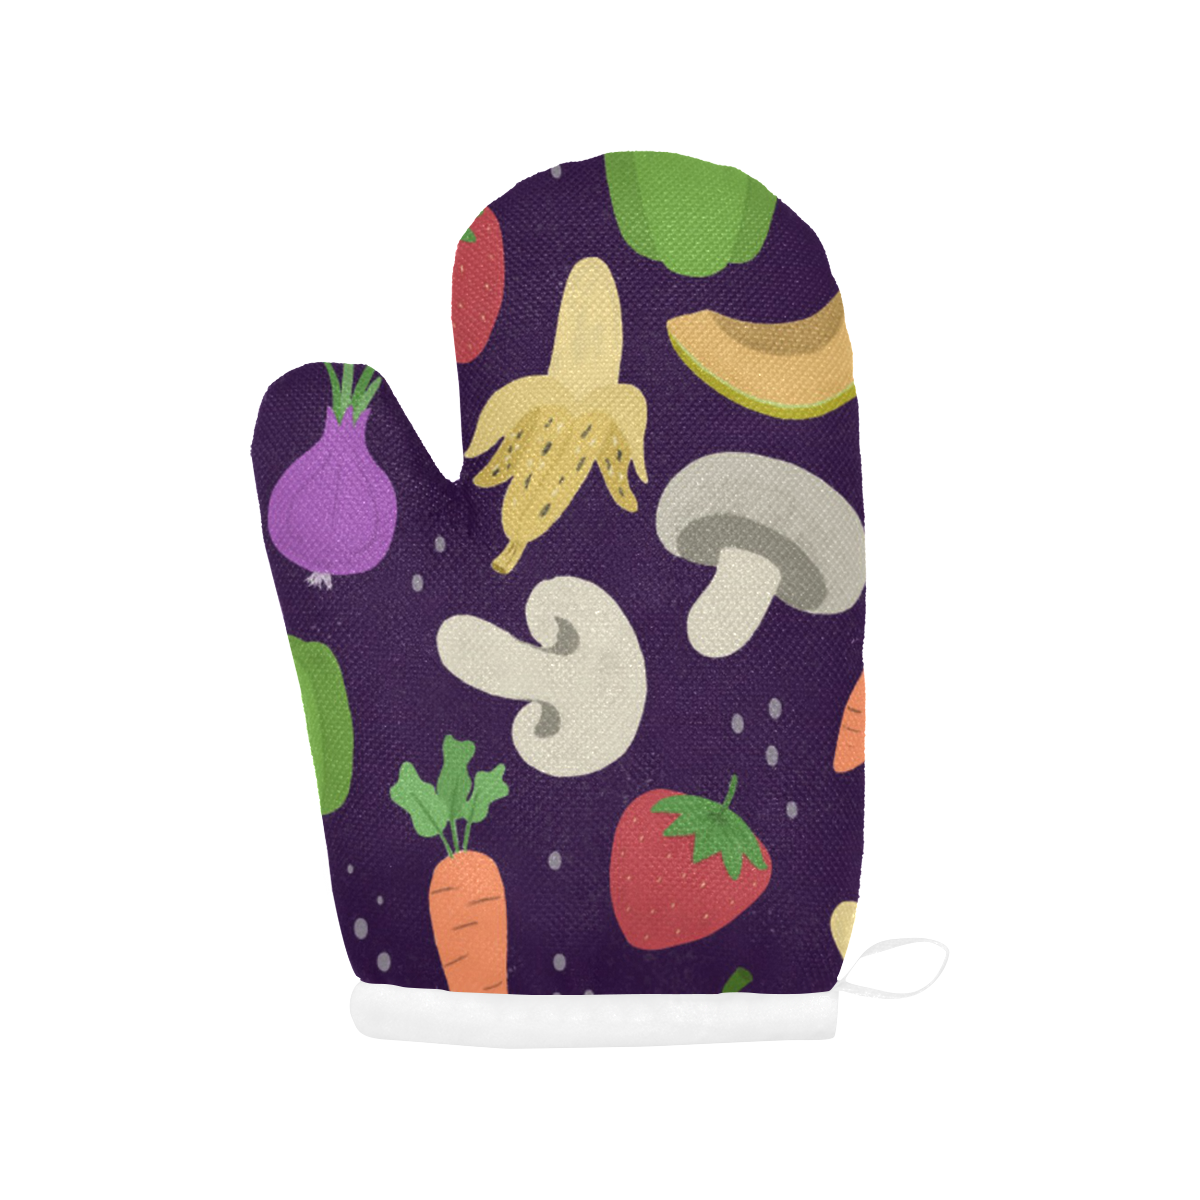 Fruits and Veggies Oven Mitt (Two Pieces)